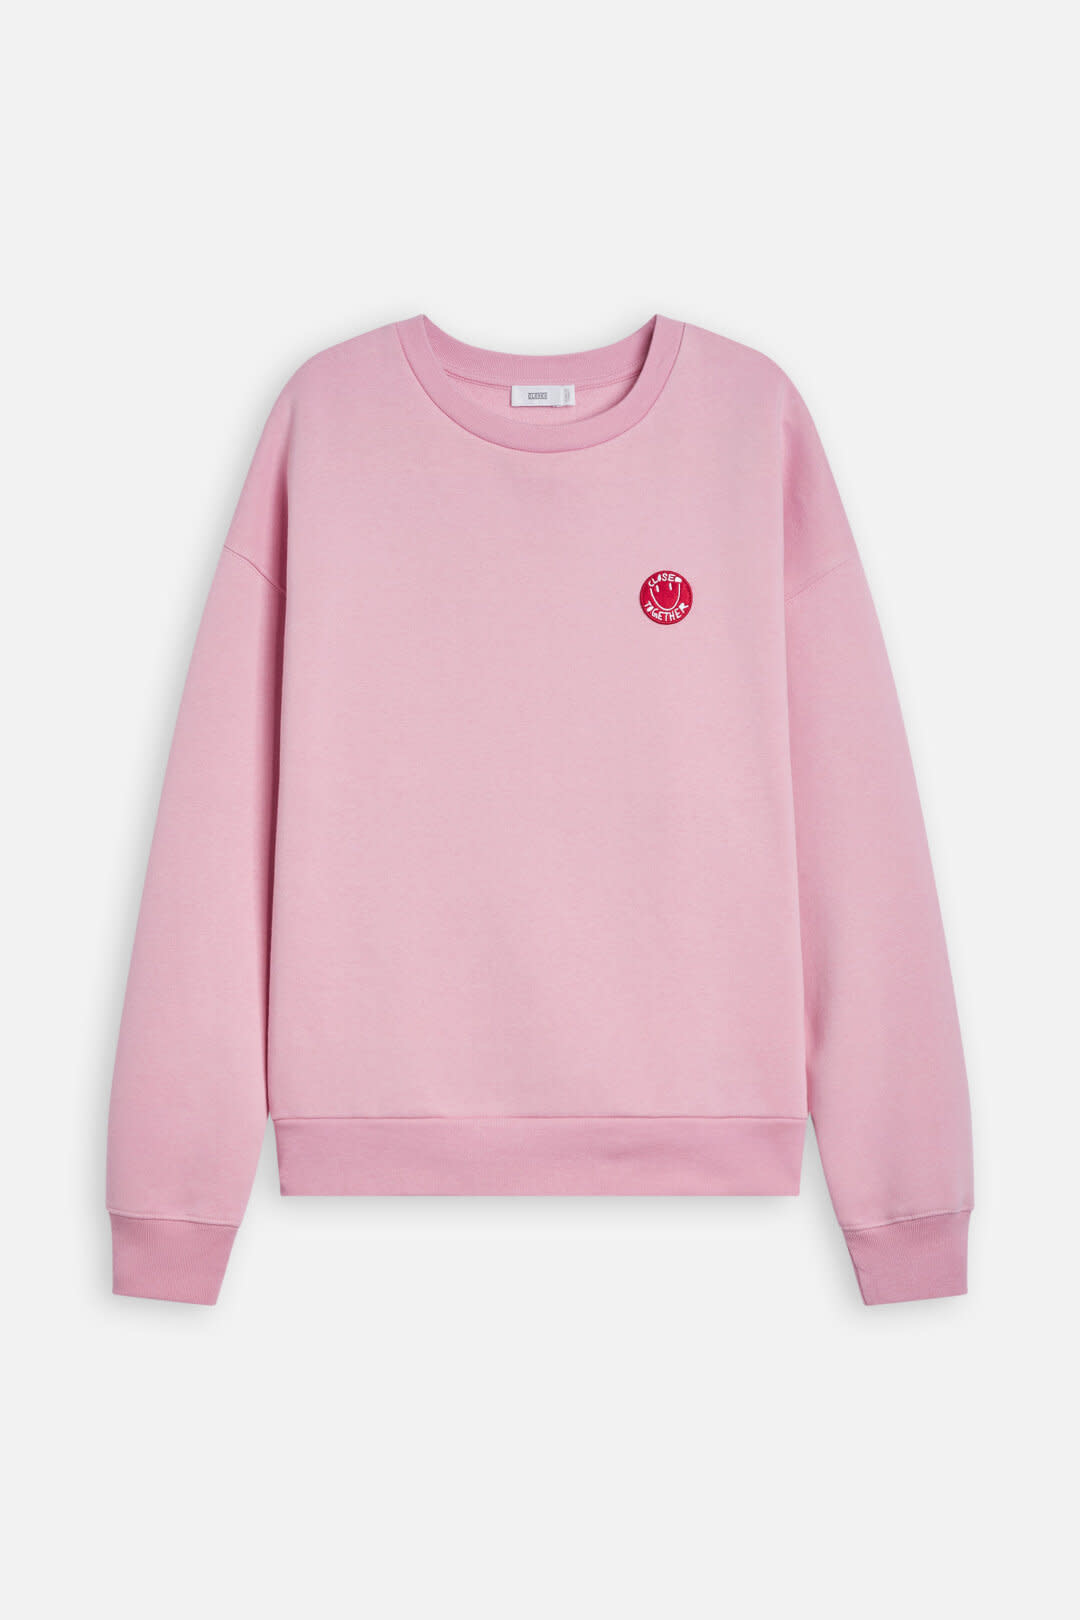 sweater candy pink-1